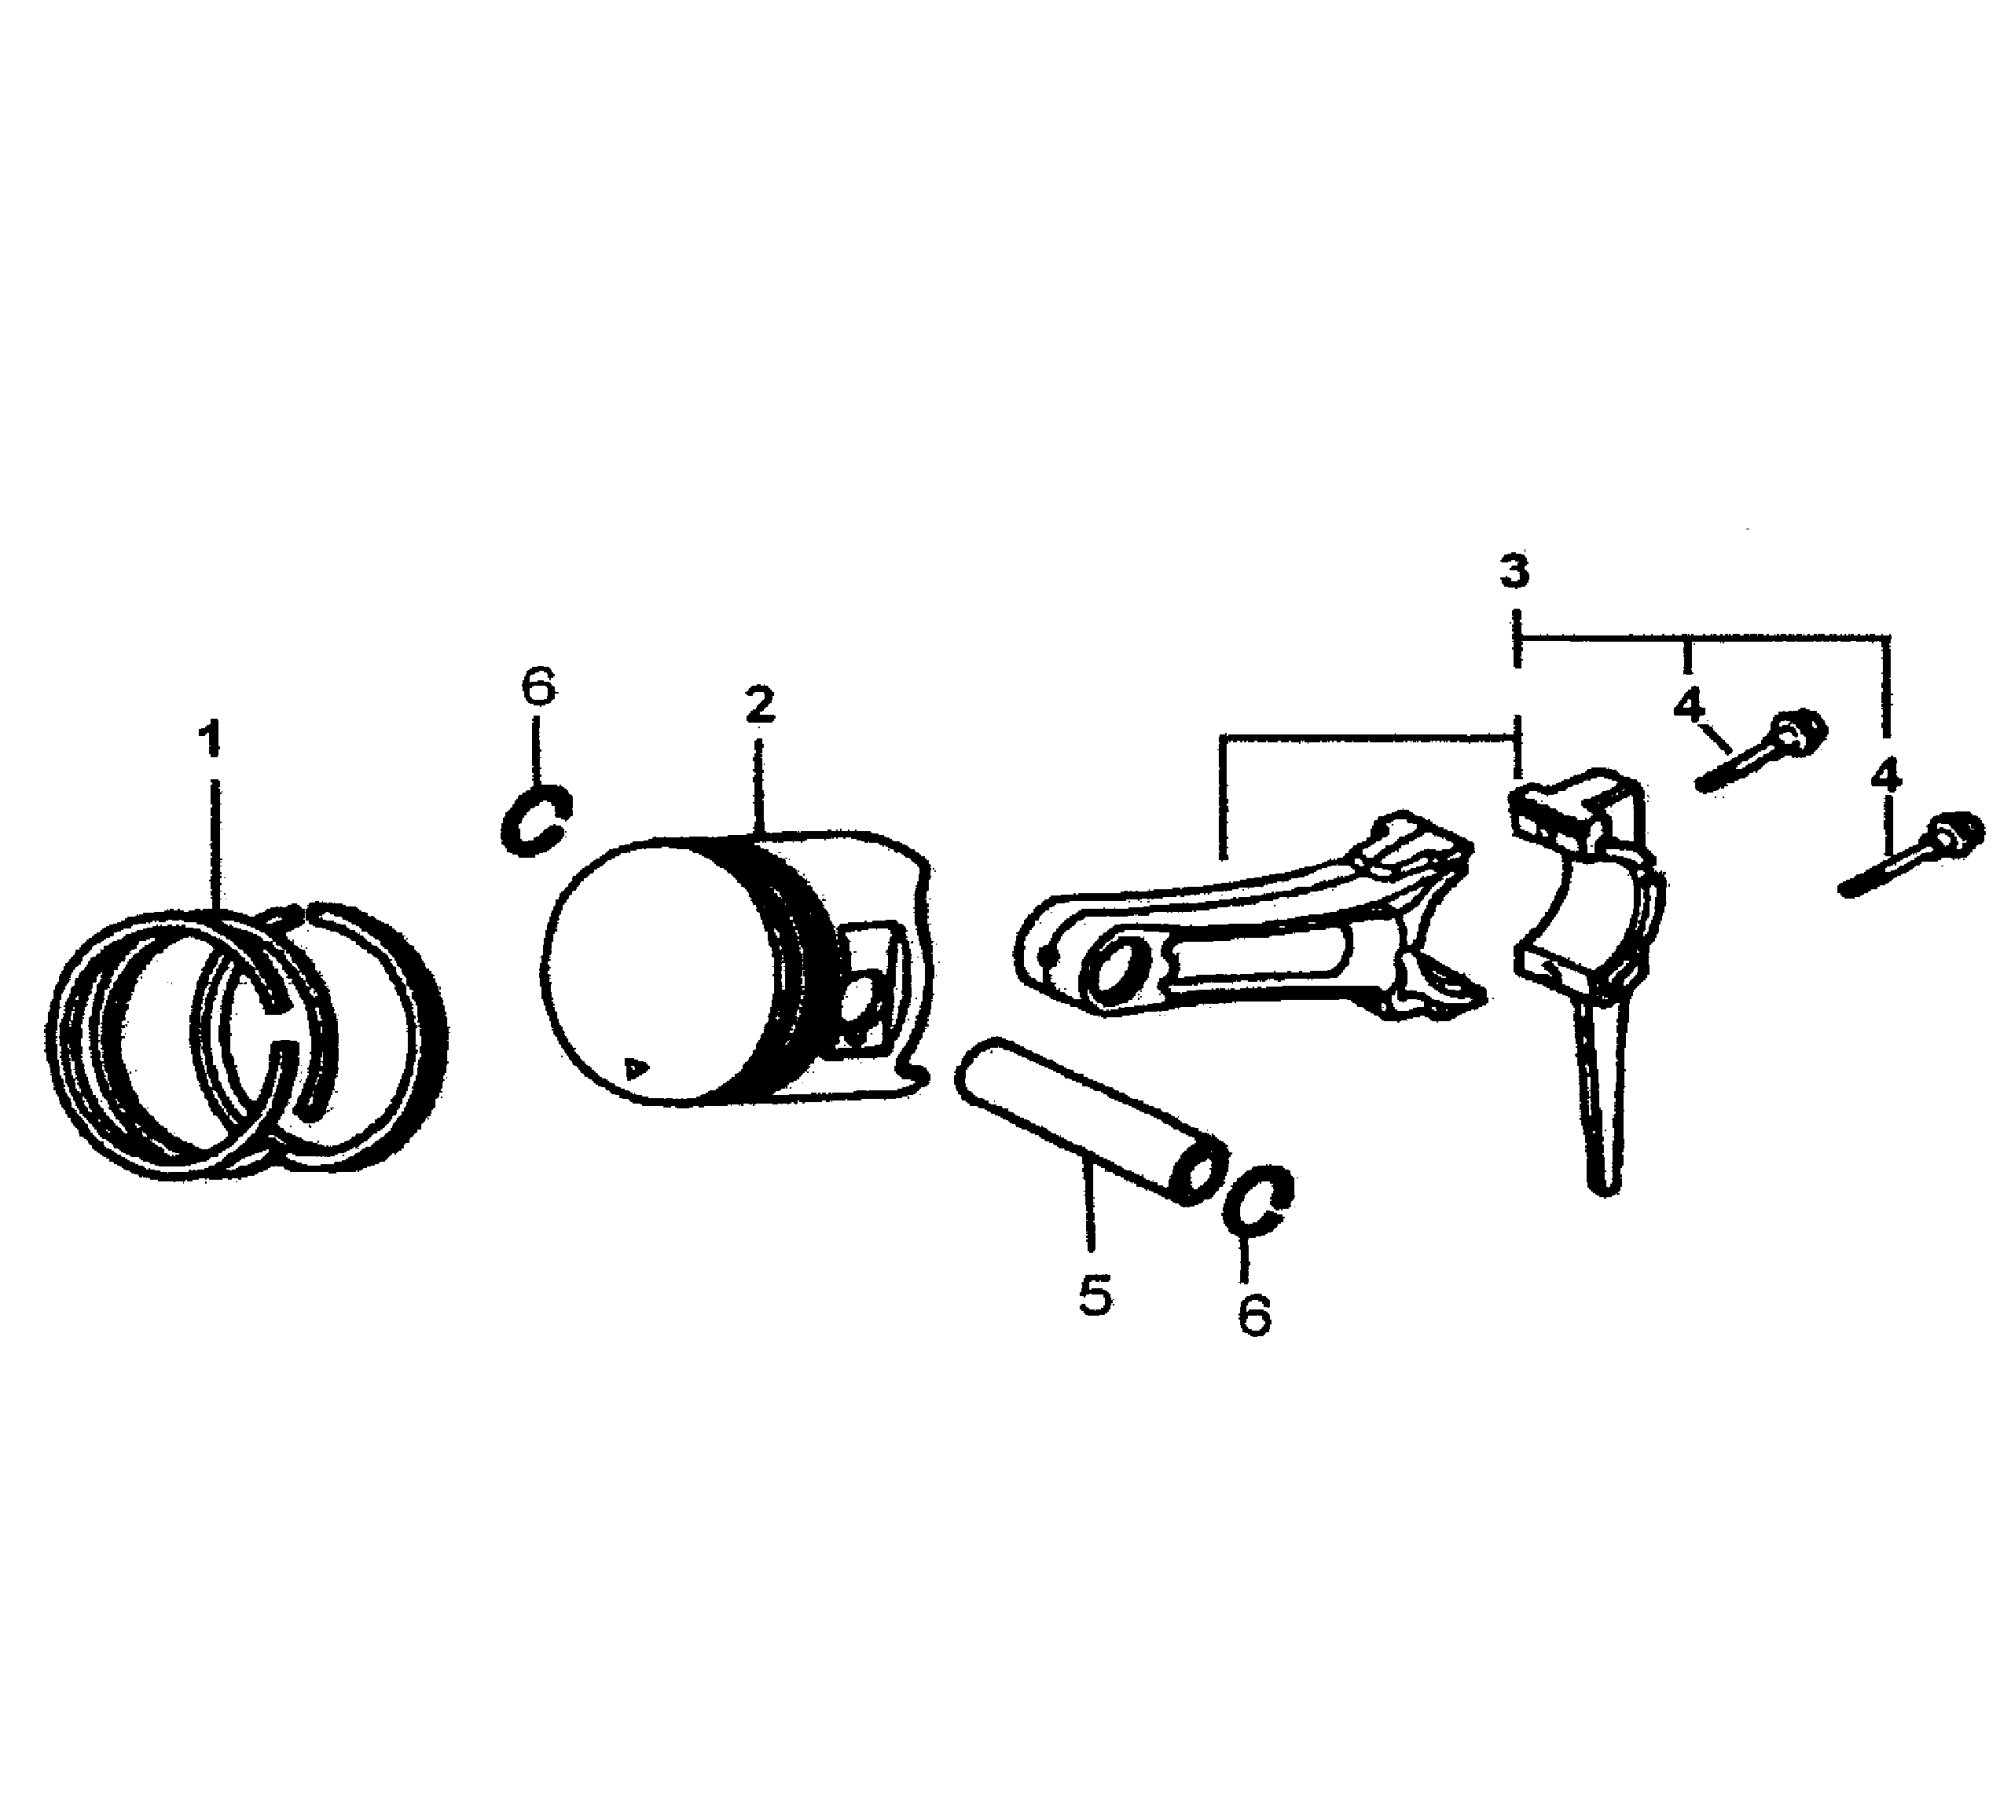 hight resolution of generac gp7500e 5943 0 piston rod assy diagram